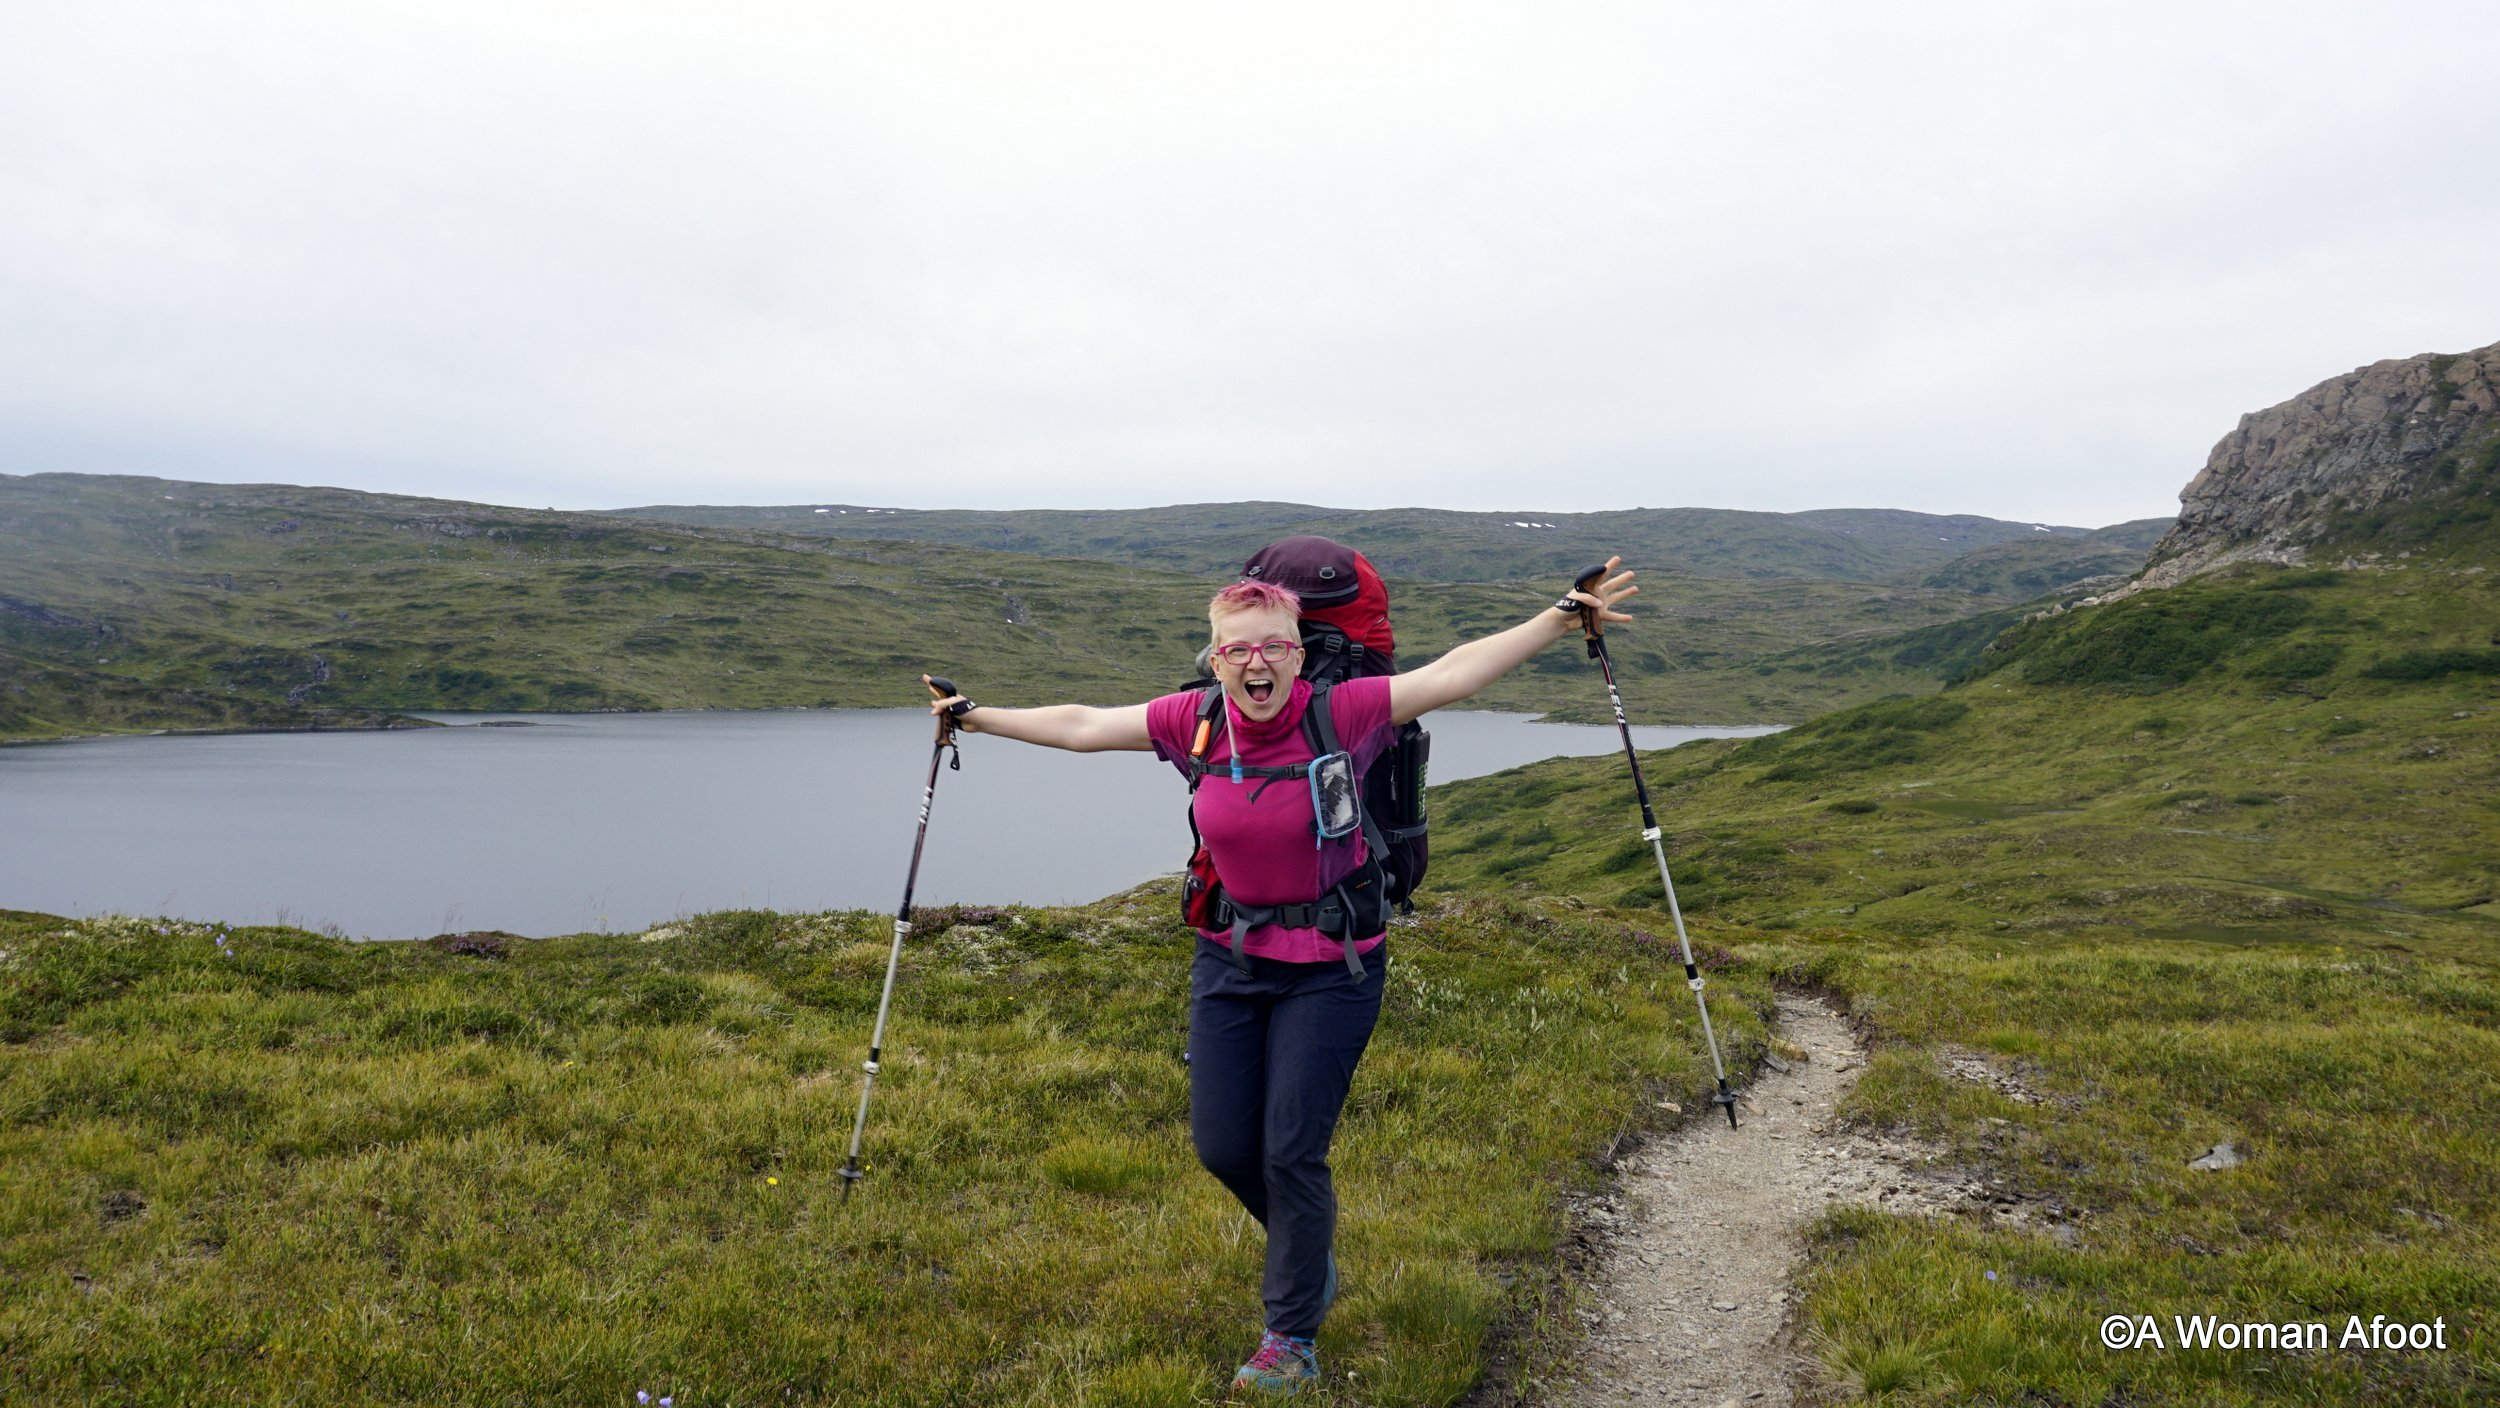 All the WHYs and HOWs of TREKKING POLES: benefits, best uses, adjustments, downsides, and tips to make you into a hiking goddess :) awomanafoot.com